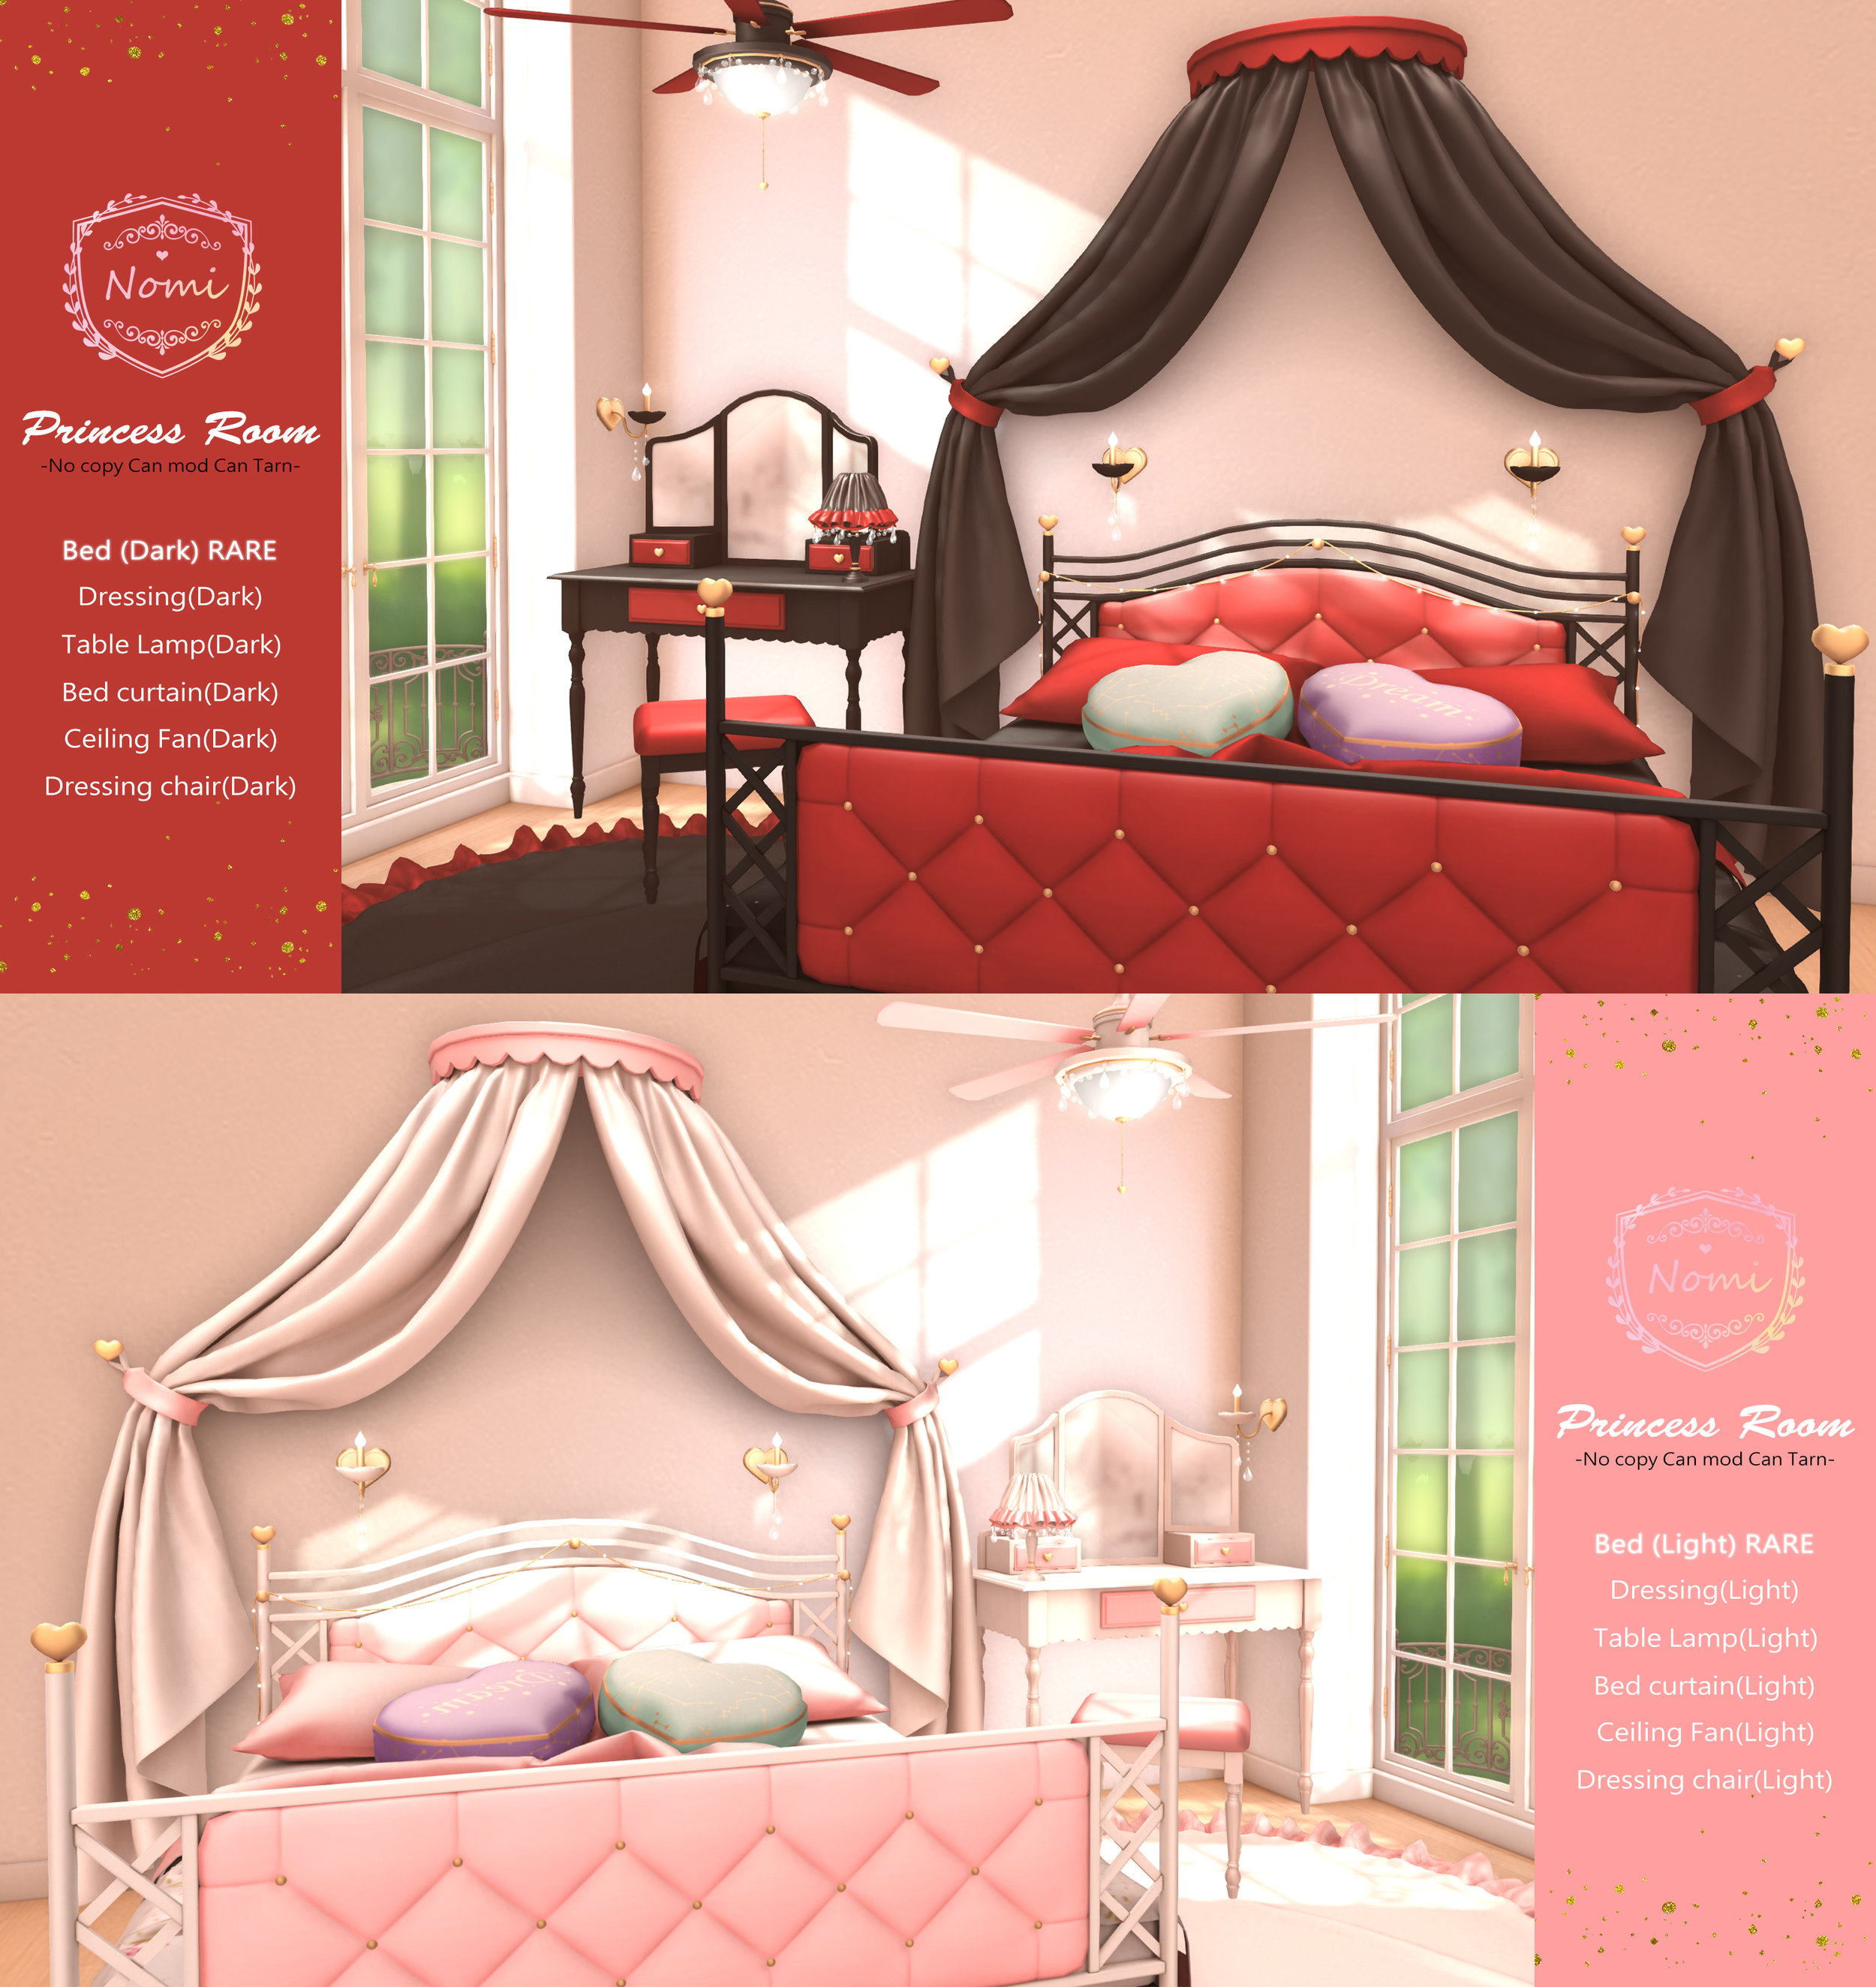 Princess-Room-AD-2.jpg